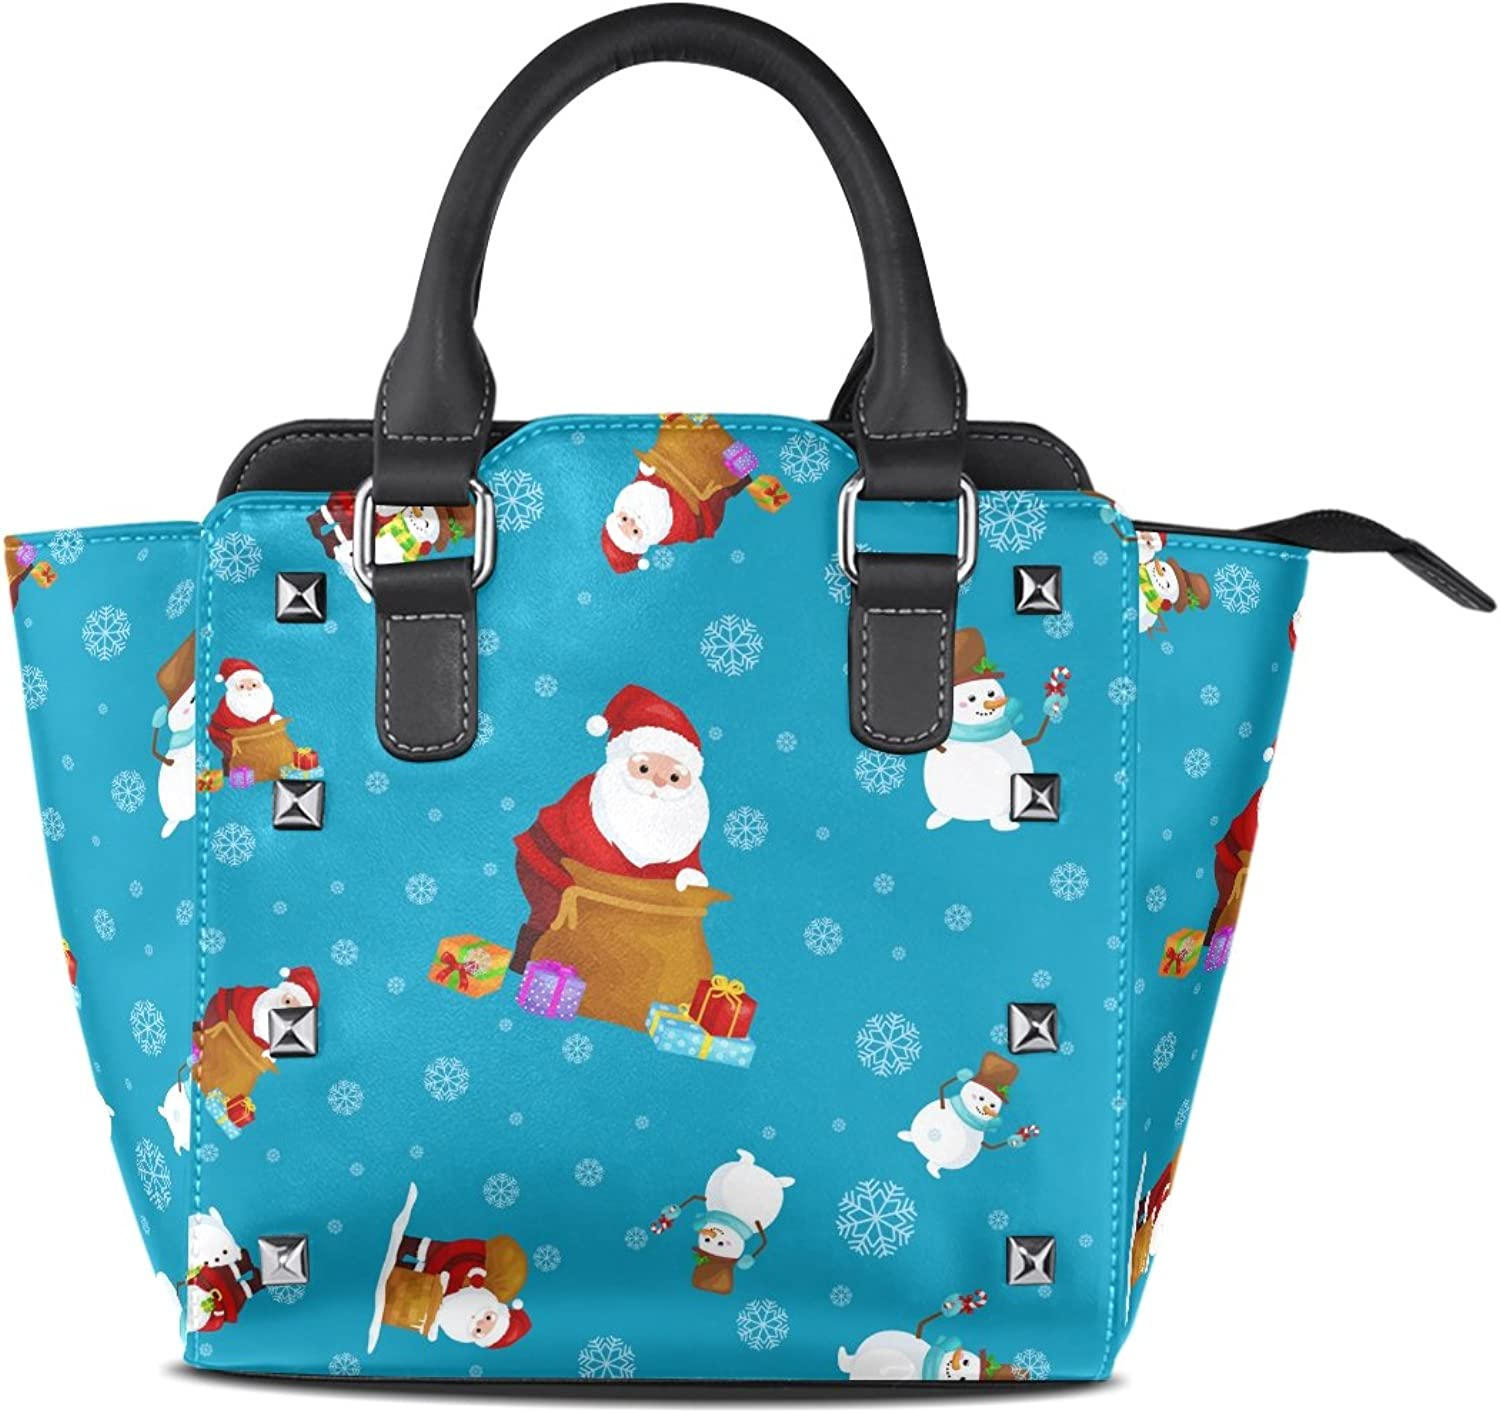 Sunlome Merry Christmas and Happy New Year Santa Claus Print Handbags Women's PU Leather Top-Handle Shoulder Bags